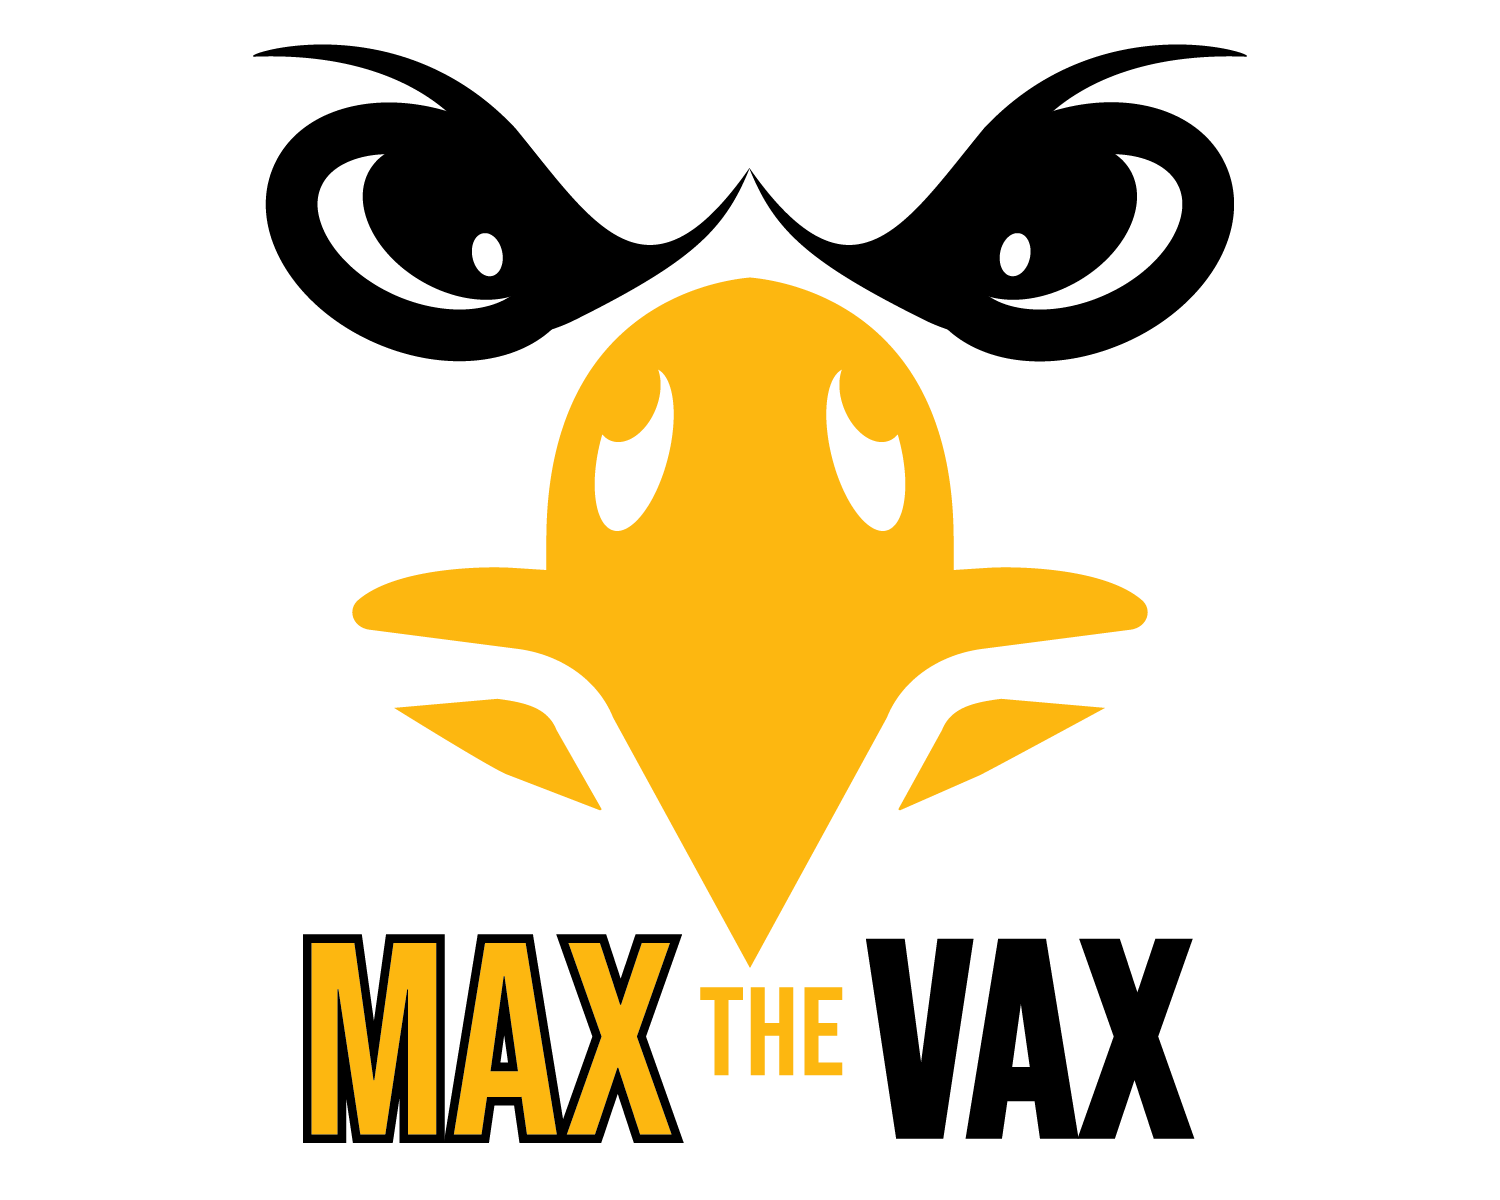 max the vax logo with a griffon's face